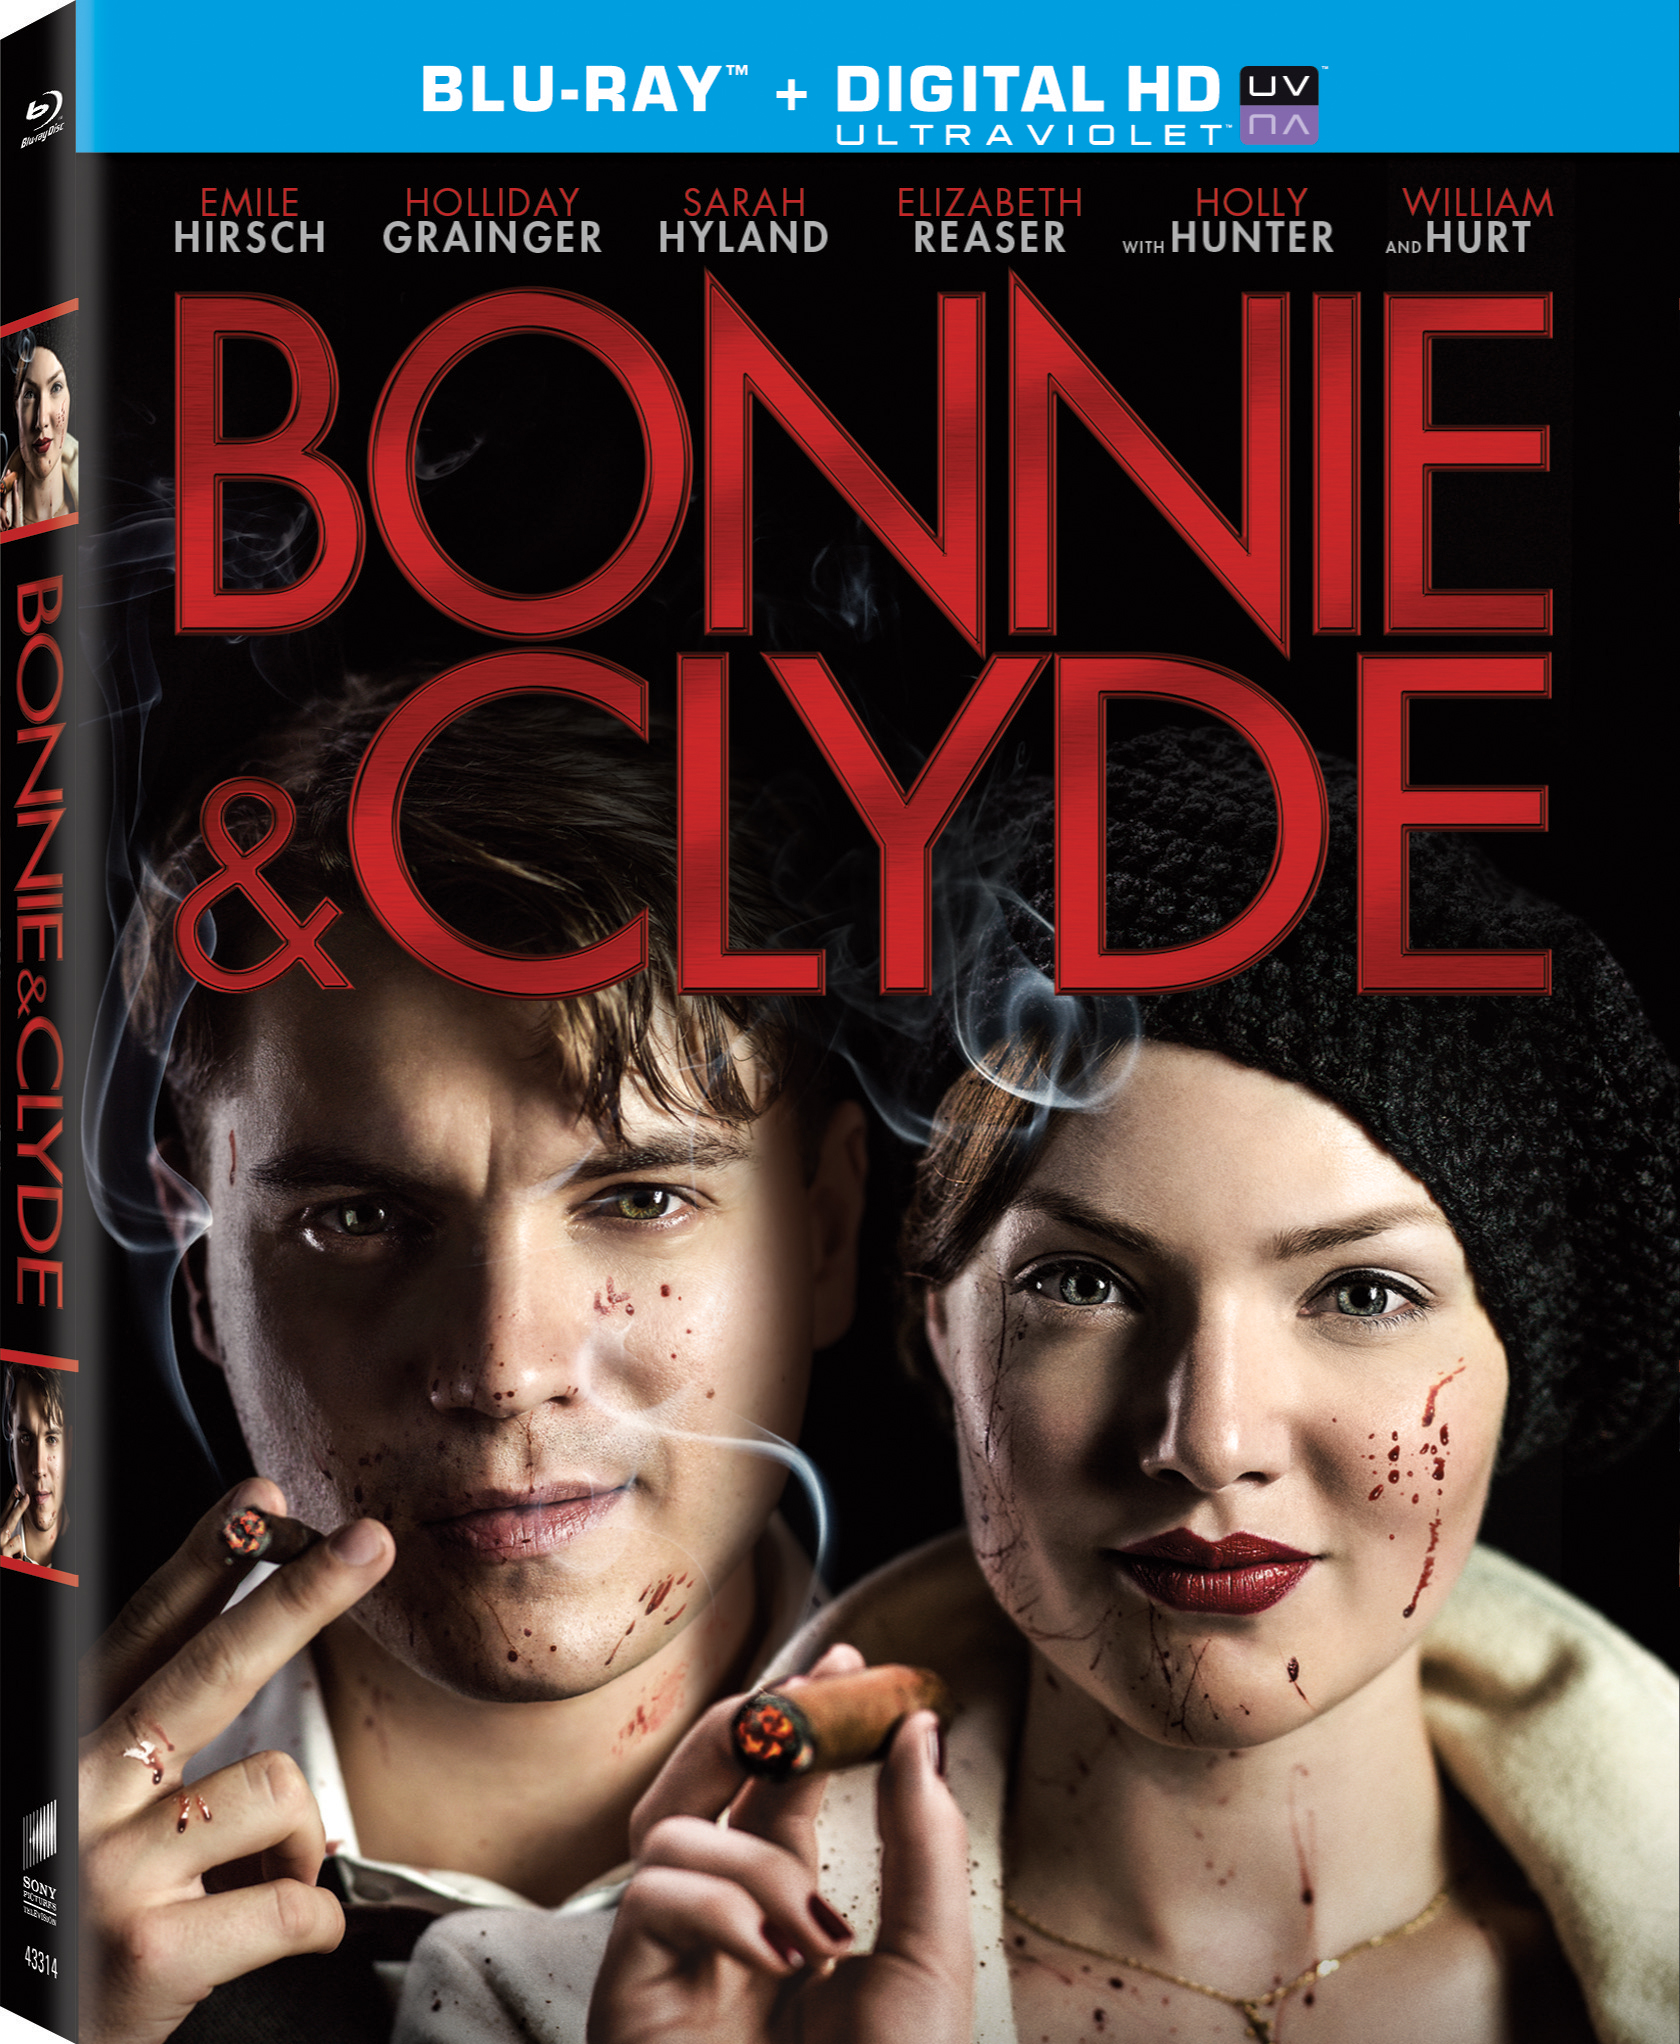 Bonnie_Clyde_BD_Outersleeve